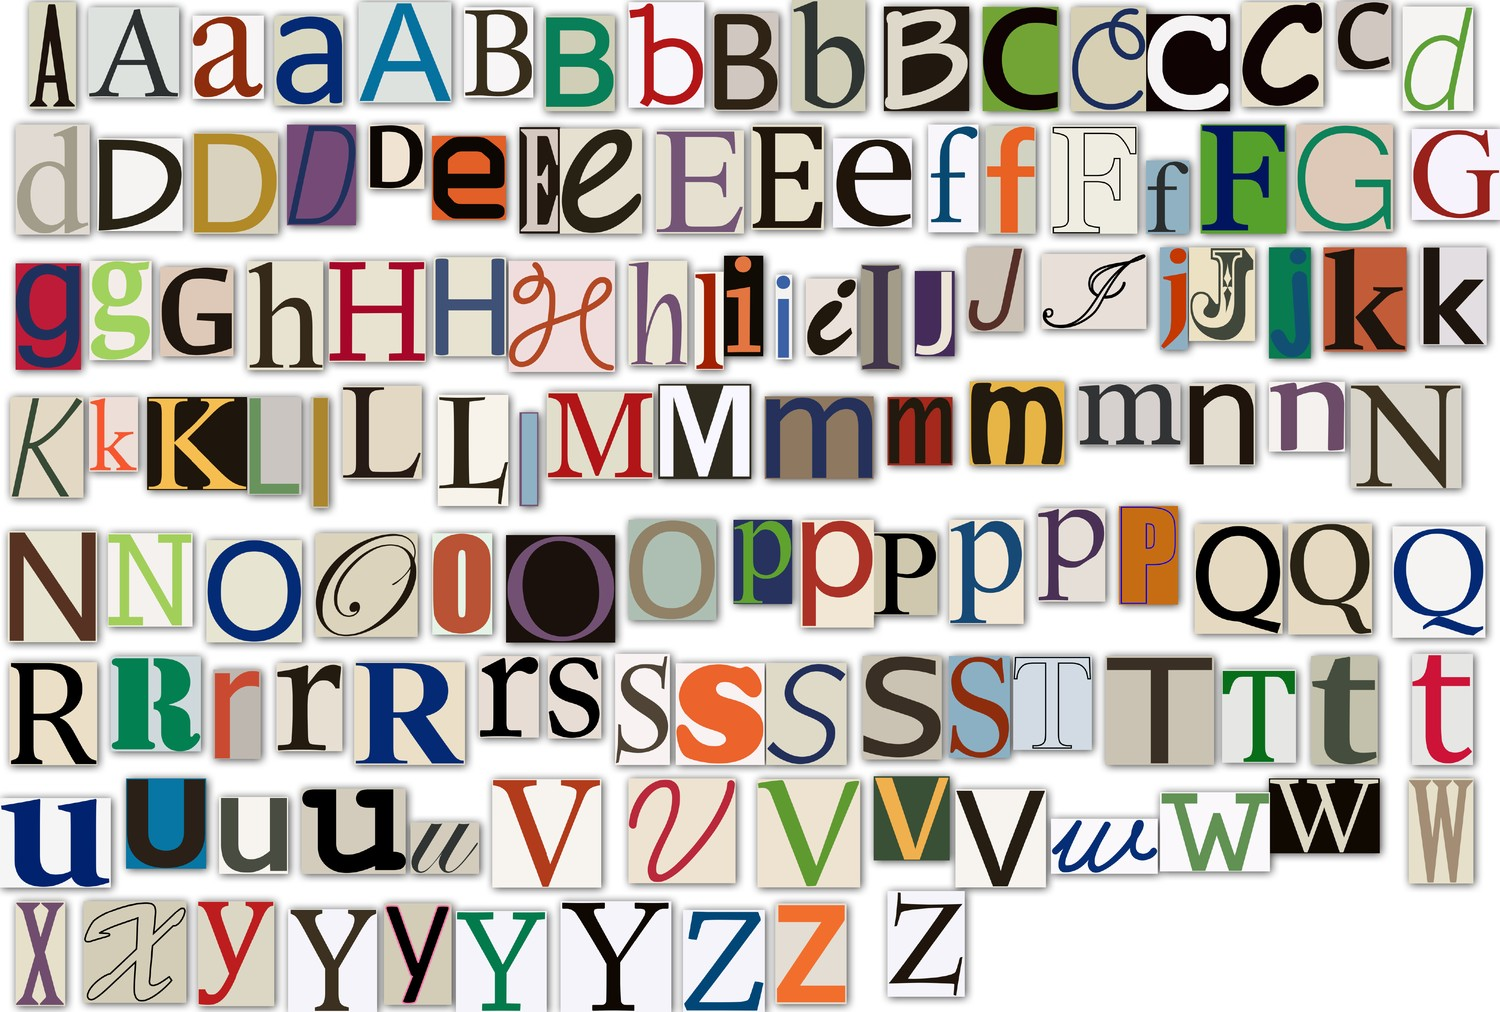 Lettering clipart font Magazine Magazine Use Newspaper Clipart